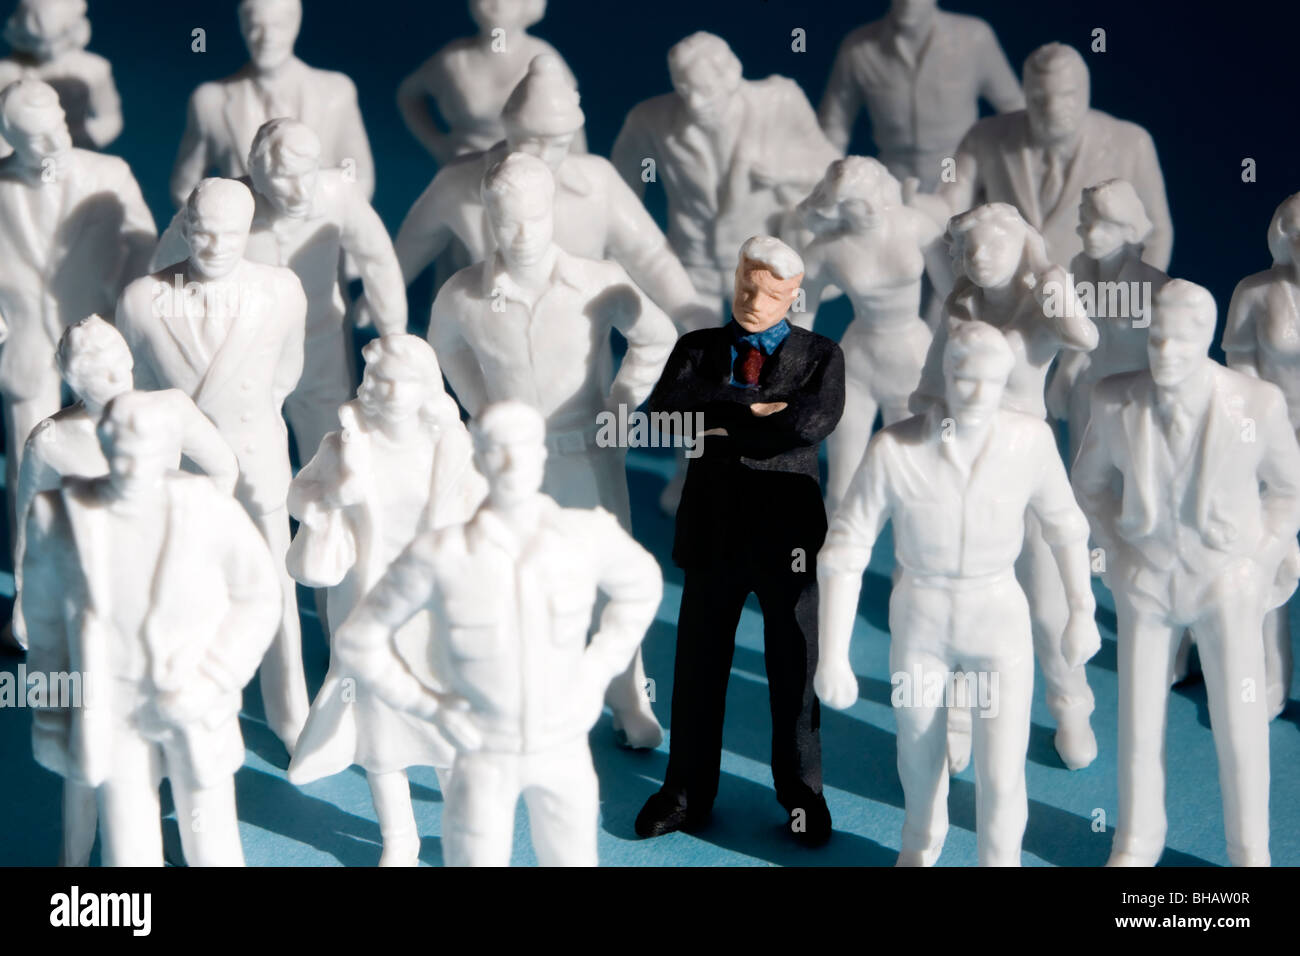 Miniature plastic figures, crowd of people. One figure is painted, surrounded by unpainted white figures. - Stock Image